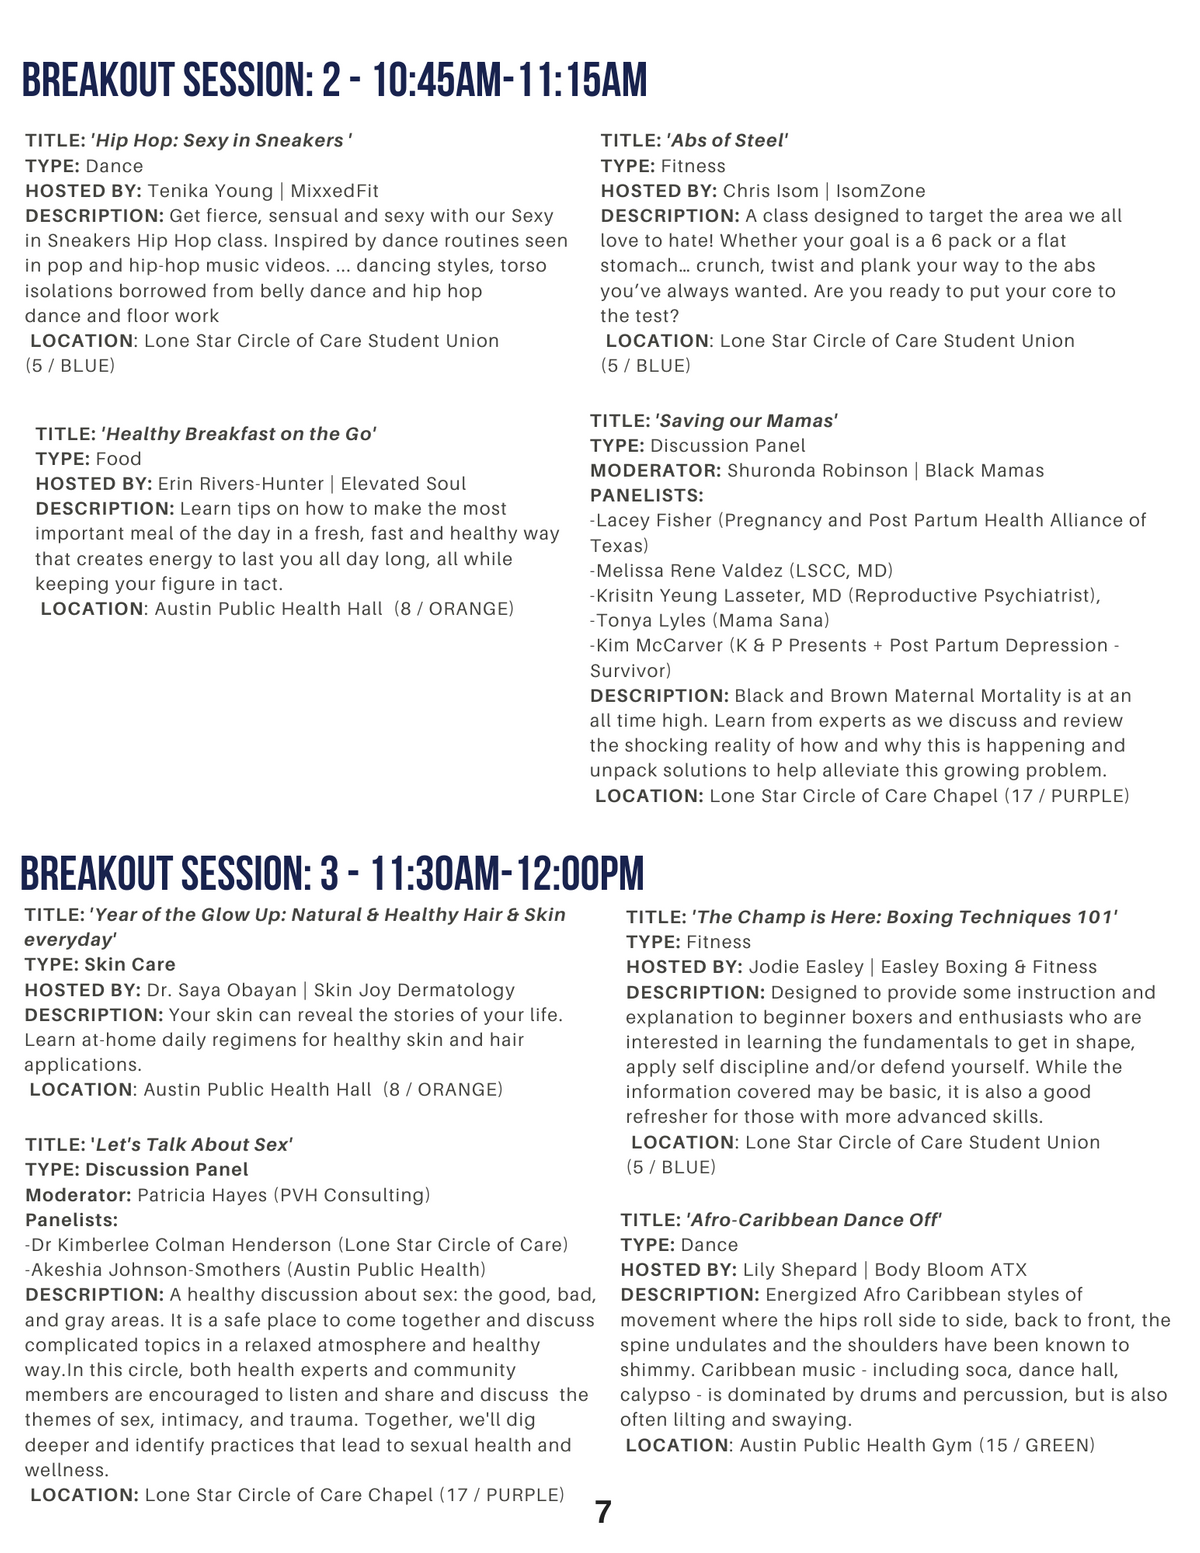 urban health expo 2020 -booklet - FINAL DRAFT (1).png